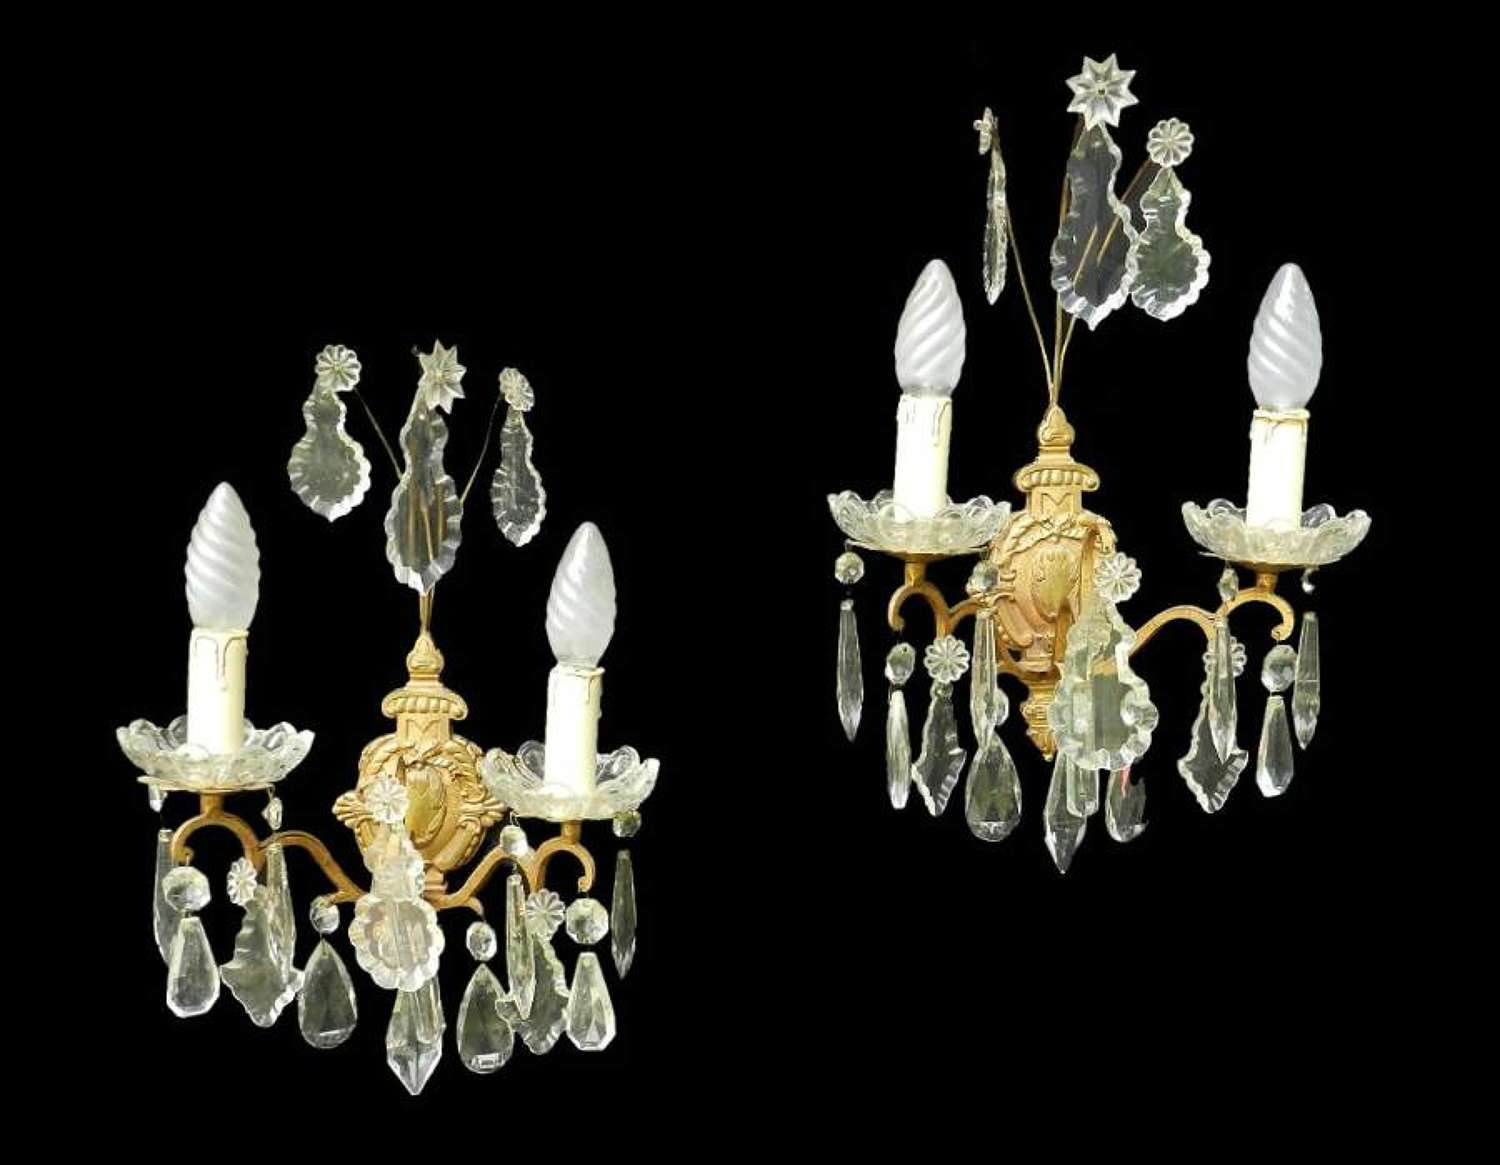 Pair of French Crystal Drop Wall Lights Appliques c1900